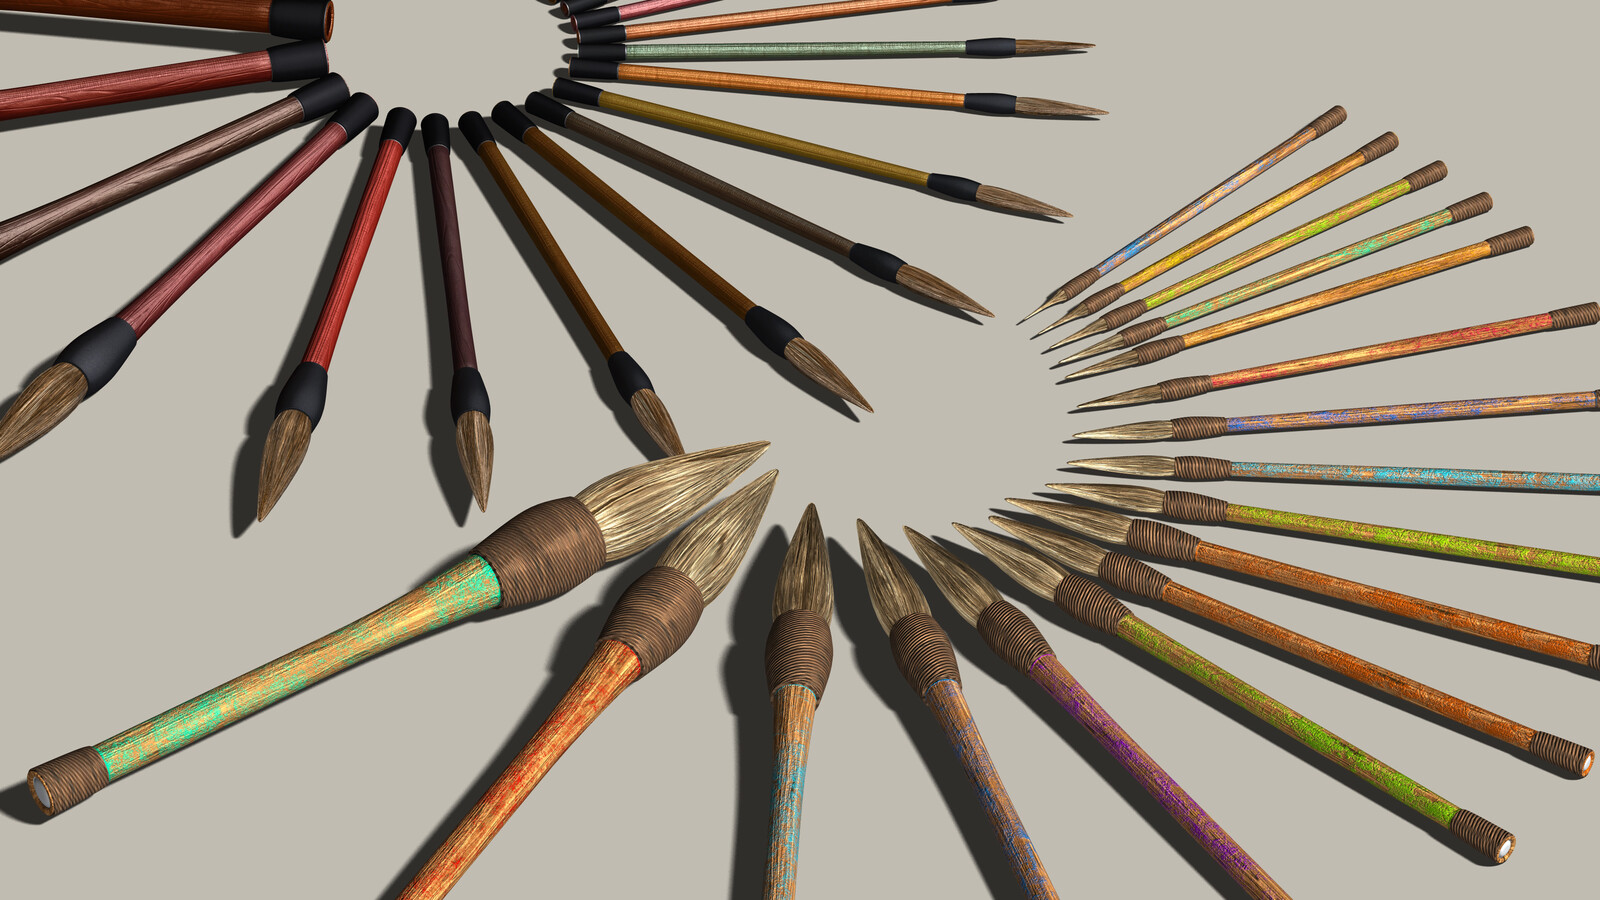 3D Model: Long-Tipped Brushes